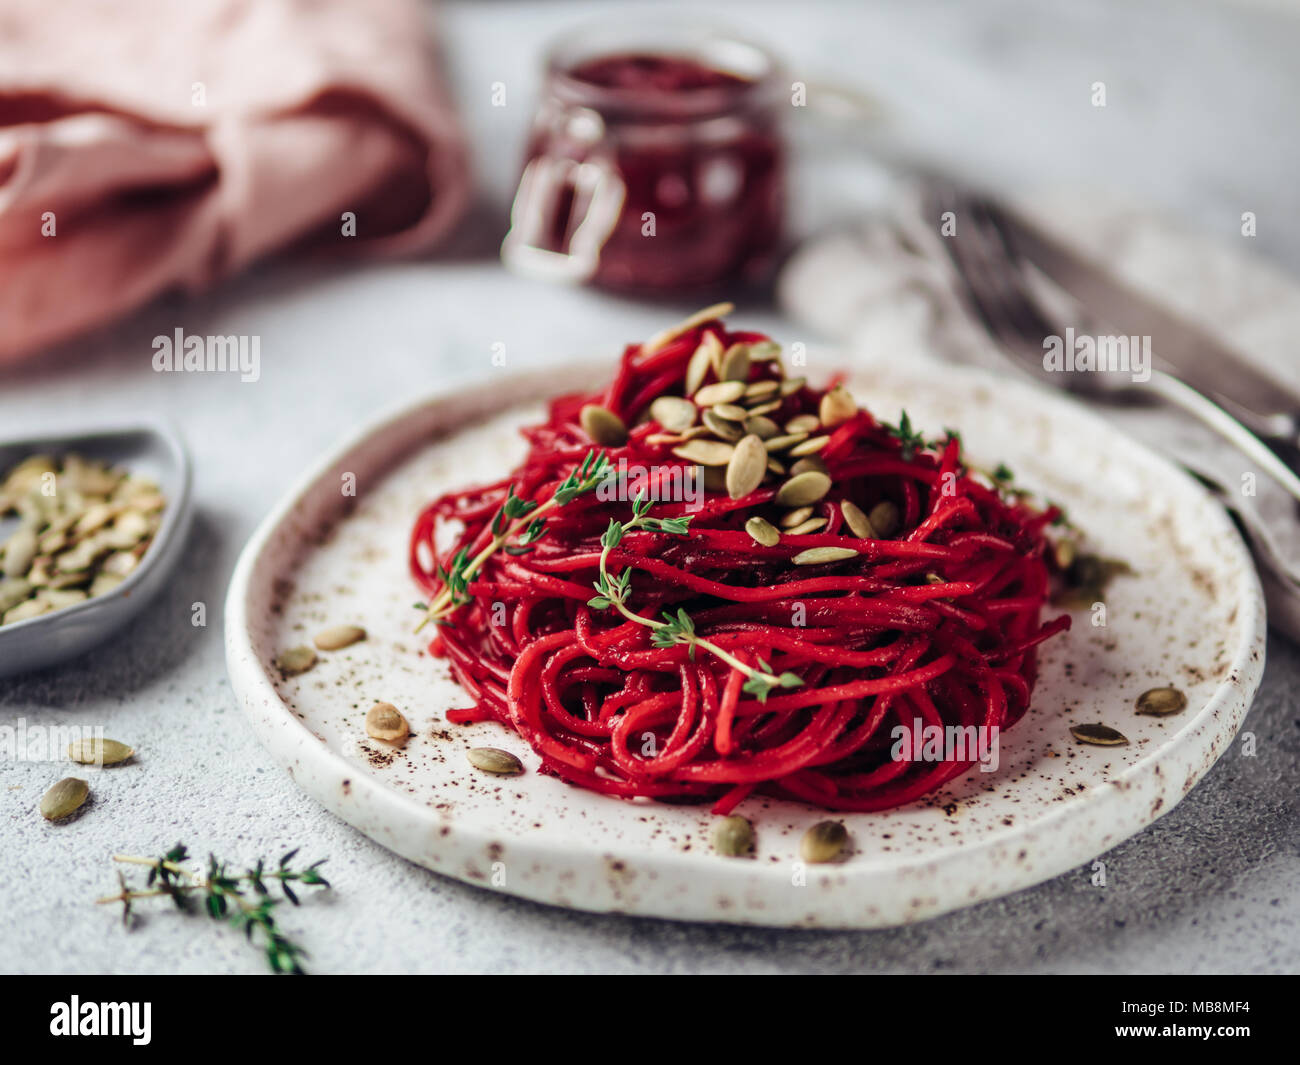 Roasted beetroot and thyme spaghetti with pumpkin seed in craft plate on gray cement background. Ideas and recipes for healthy vegan vegetarian dinner. Selective focus. - Stock Image